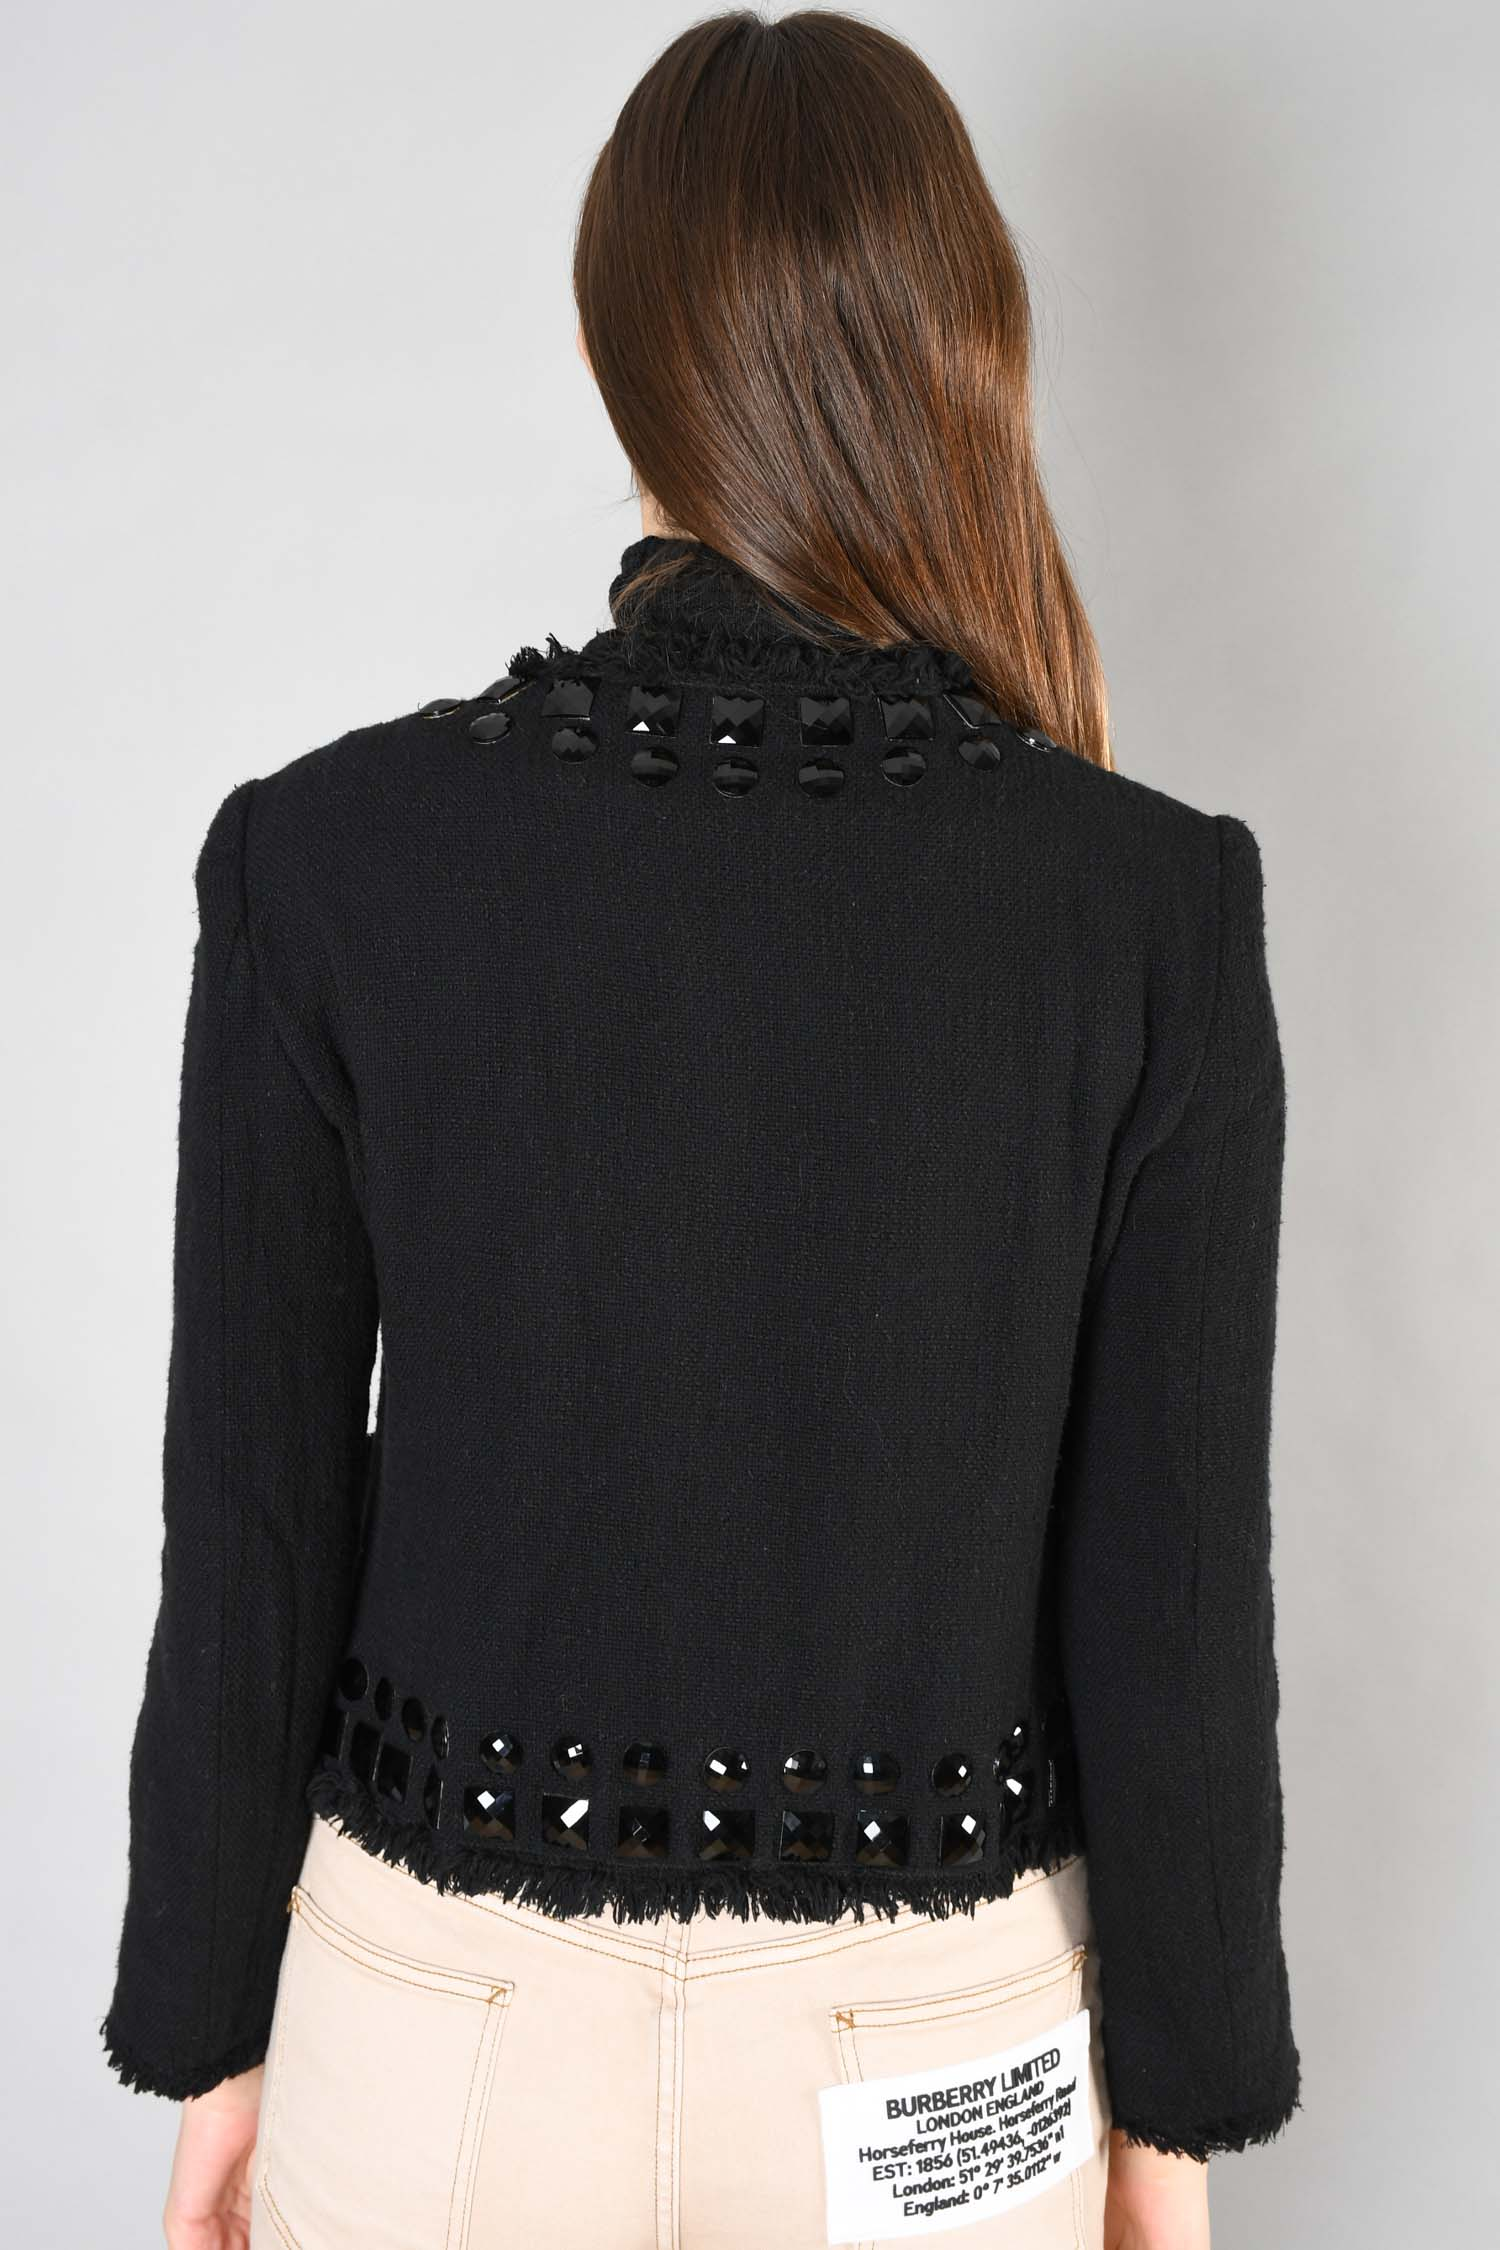 Moschino Cheap and Chic Black Embellished Jacket Size 12 US